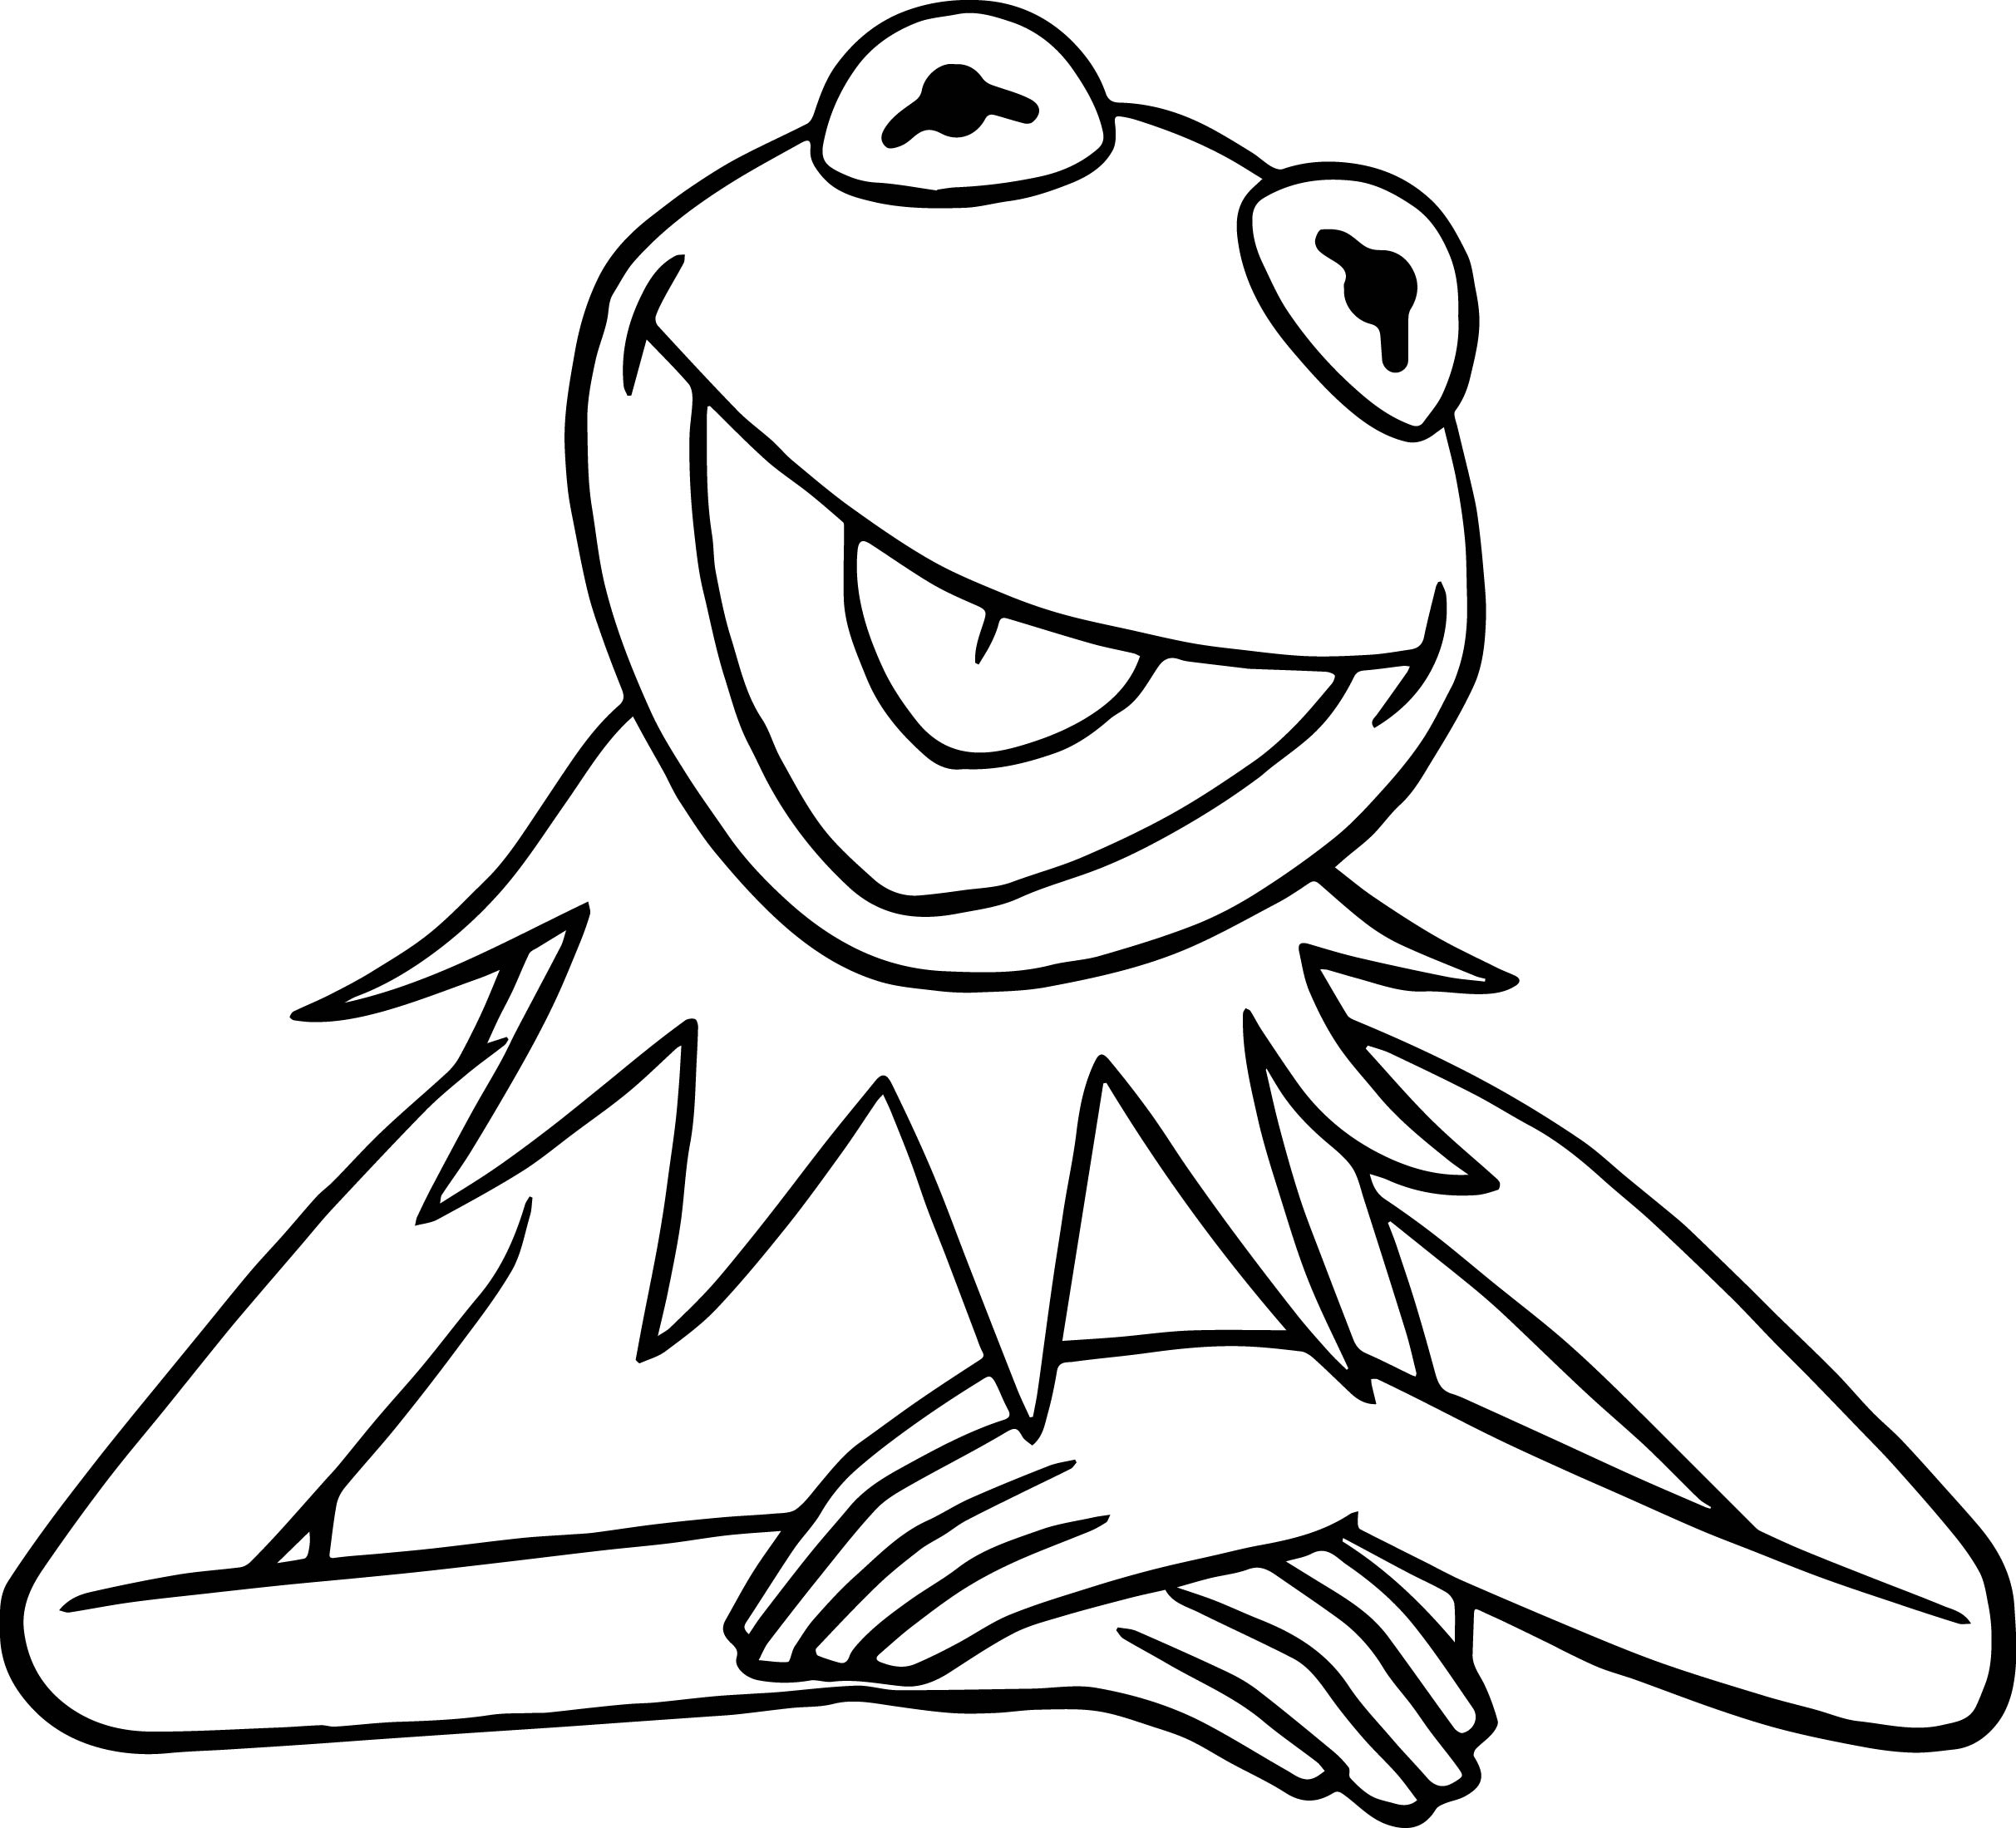 2425x2199 Drawing Kermit The Frog